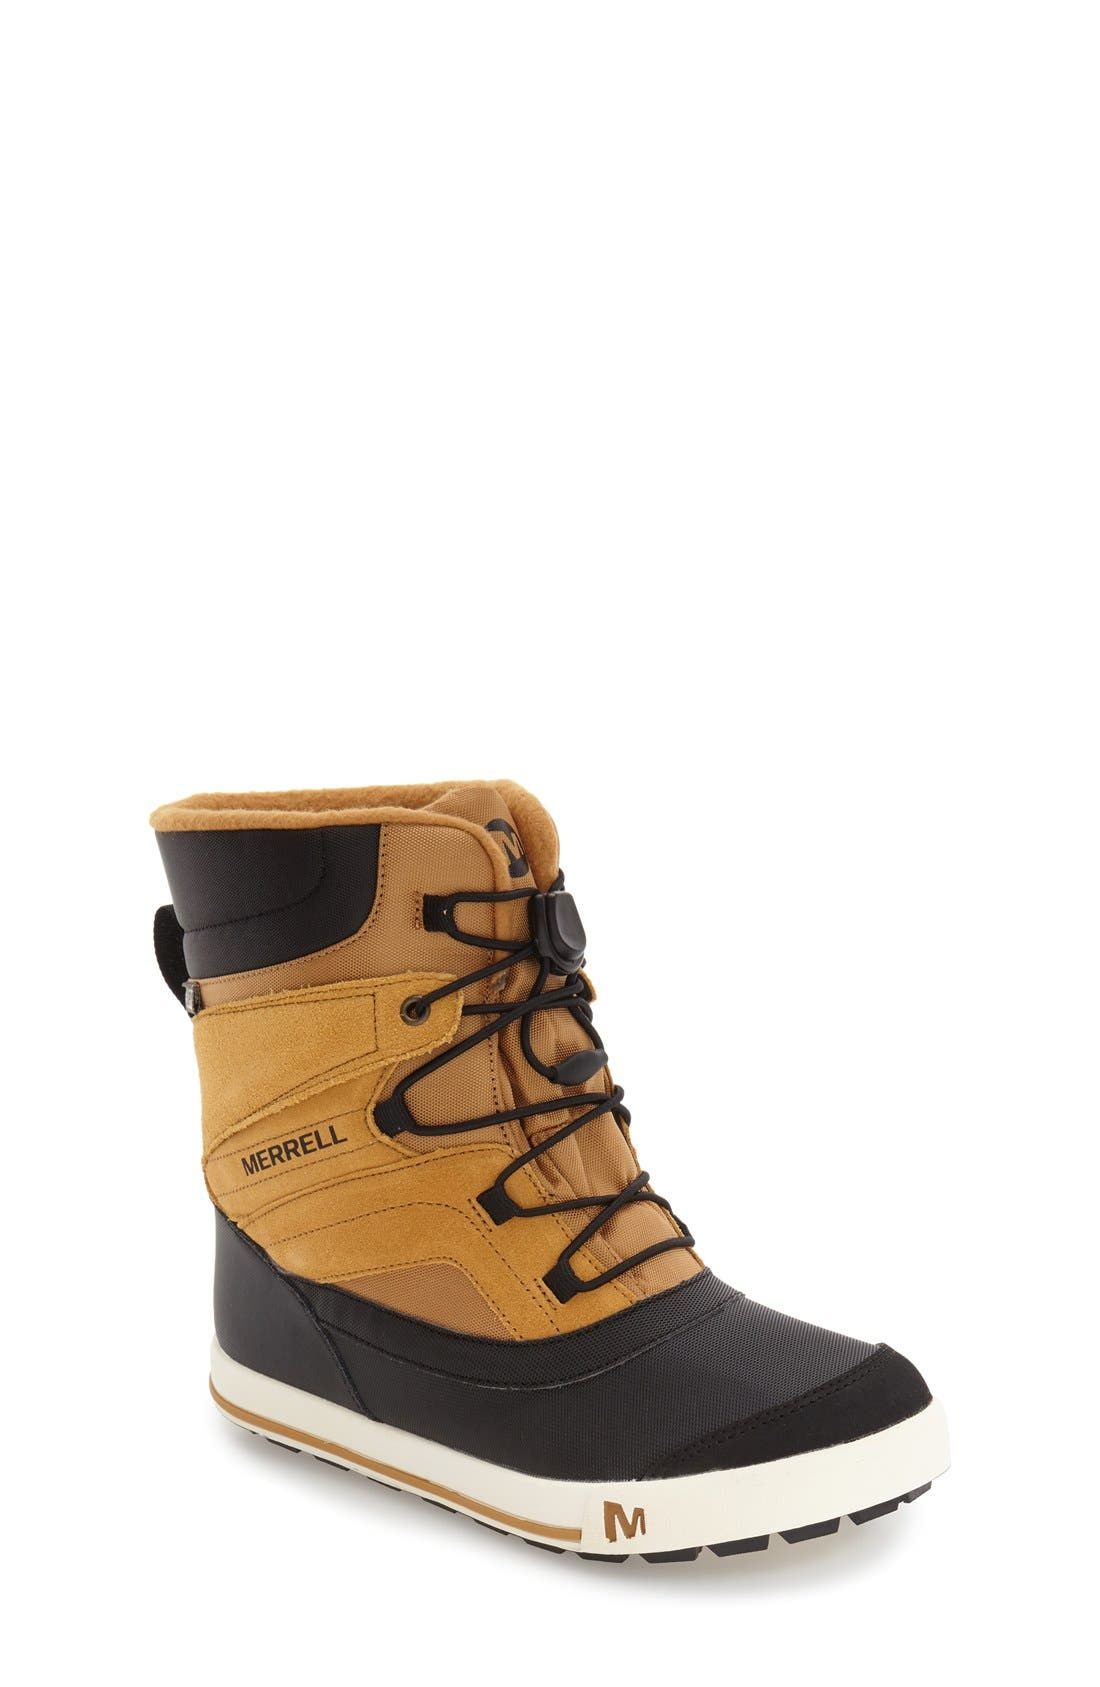 'Snow Bank 2' Waterproof Boot,                         Main,                         color, Wheat/ Black Leather